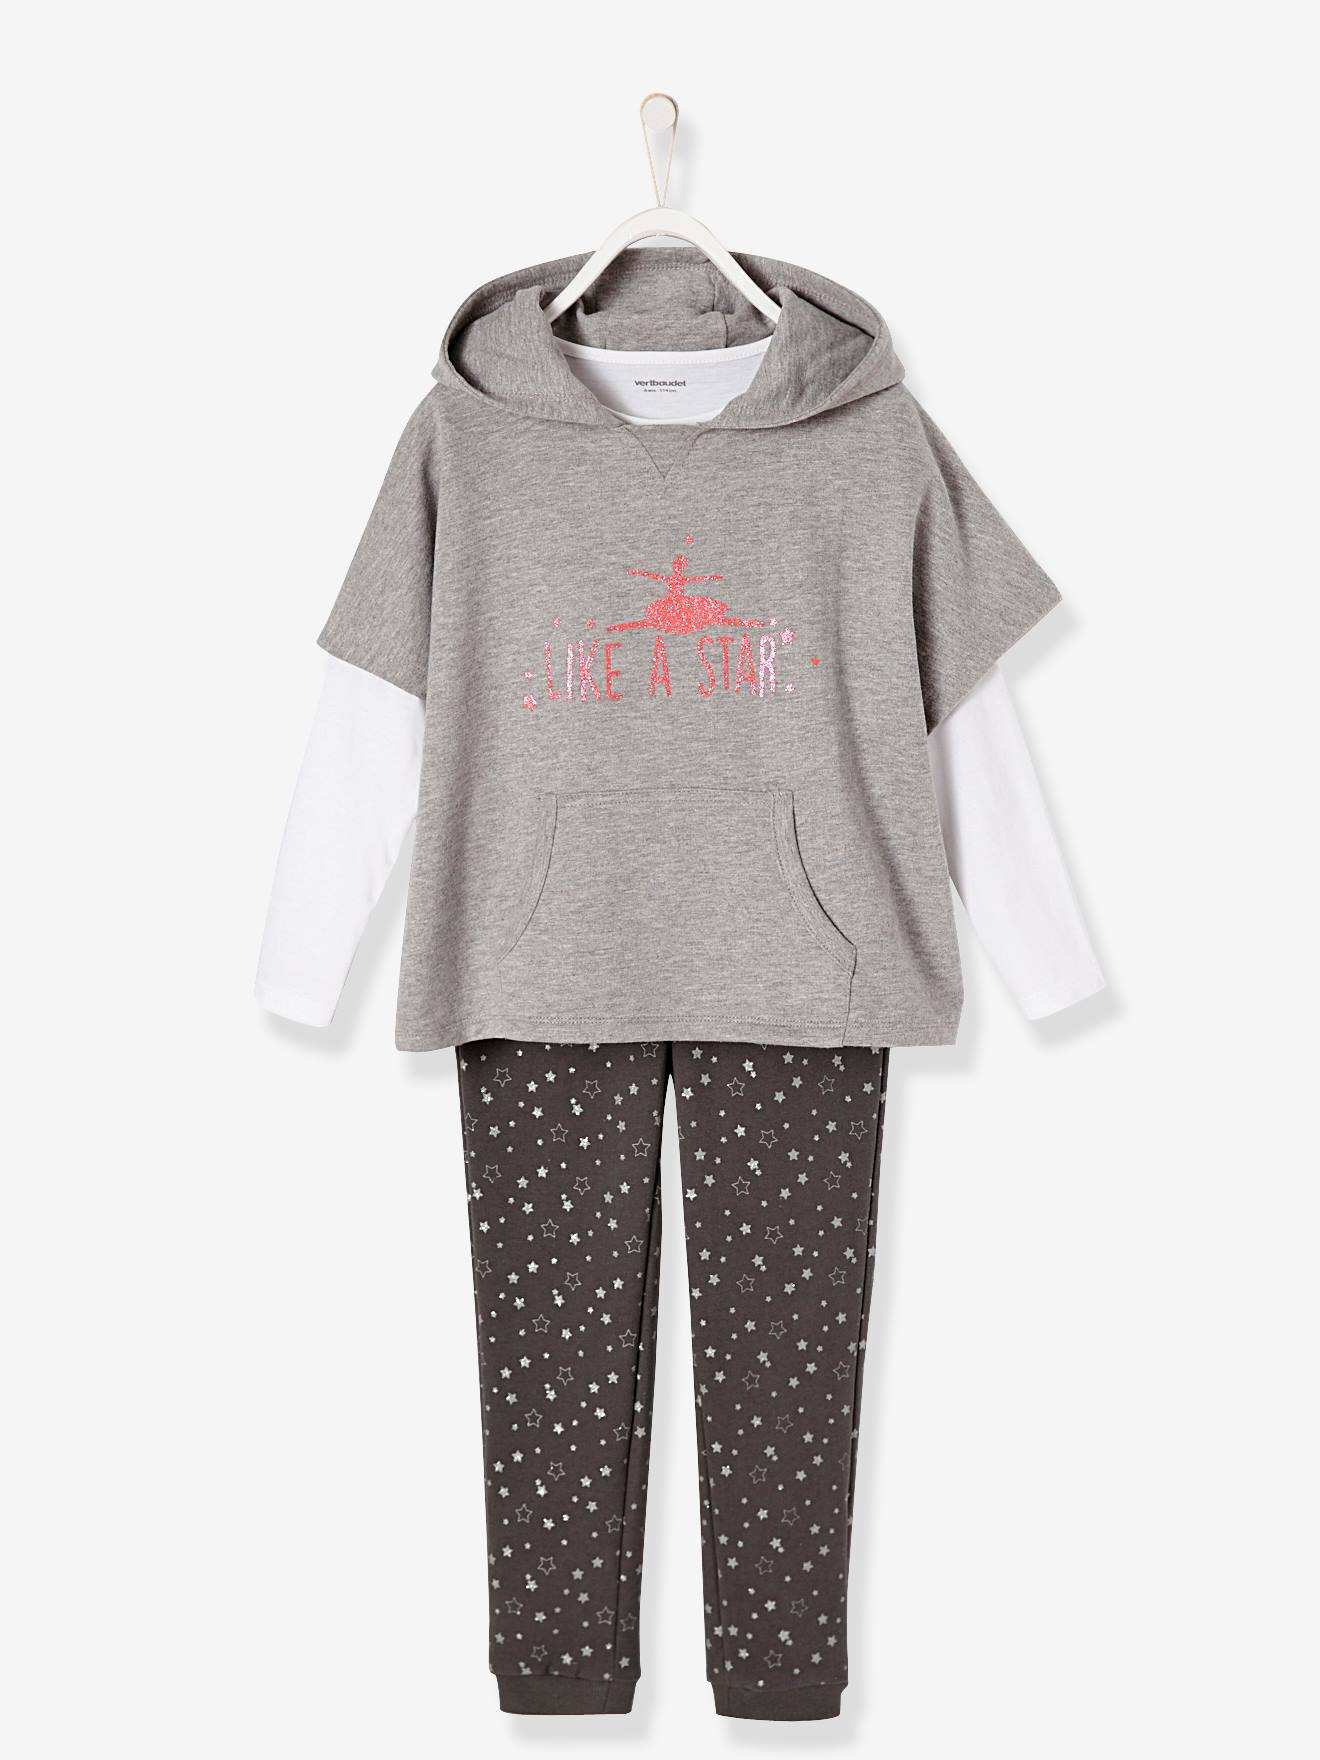 Girls' Jacket + Top + Trouser Set GREY LIGHT MIXED COLOR+PINK LIGHT SOLID